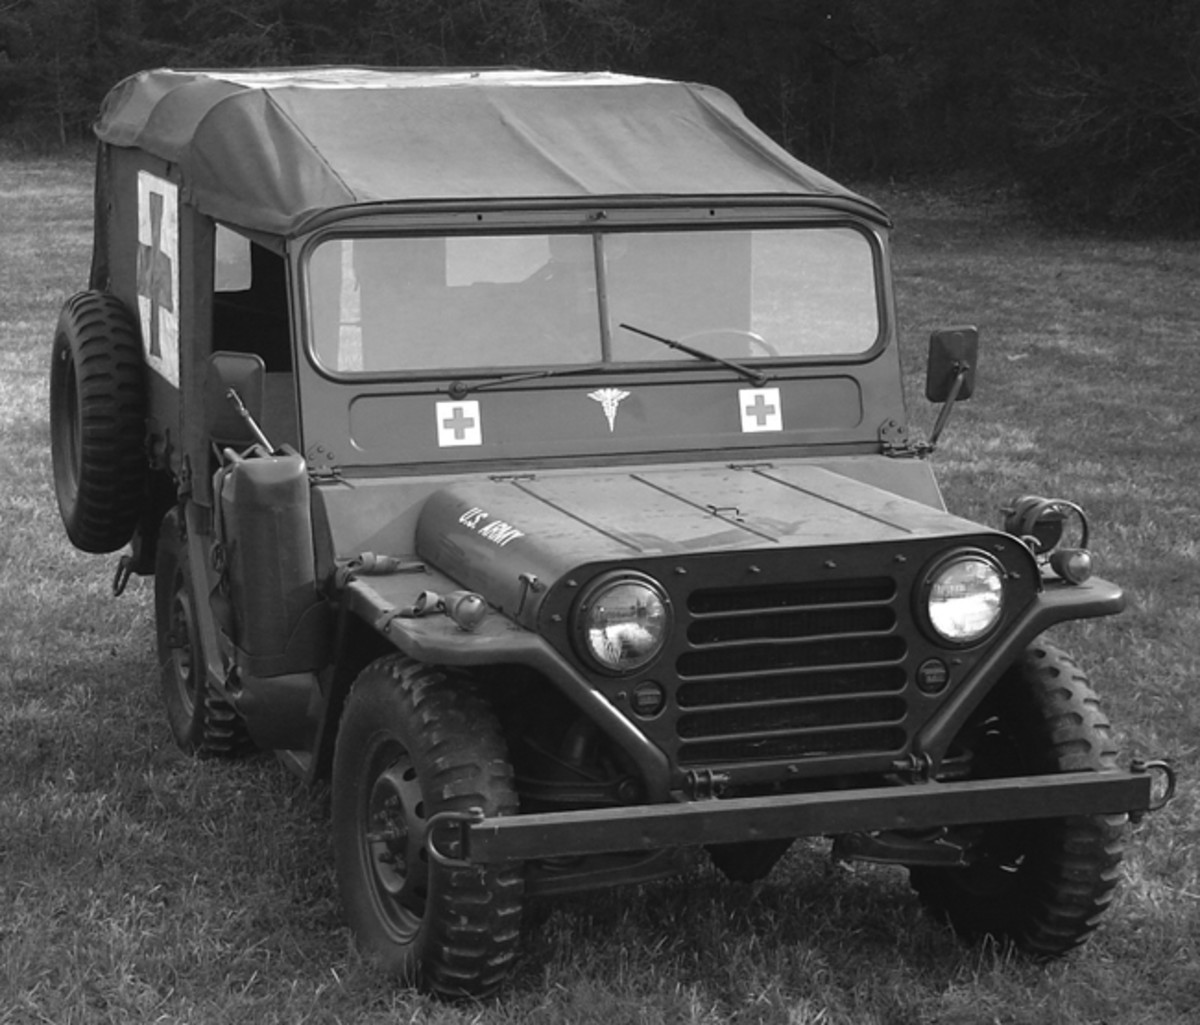 Although technically not a jeep except by nickname, the ambulance variant of the M151 MUTT, is the M718. As with the M606 and Mahindra units, the M718's body was extended in the rear while retaining the standard wheelbase, and stretcher racks installed. Note the original spare wheel mount still in place despite the body extension.